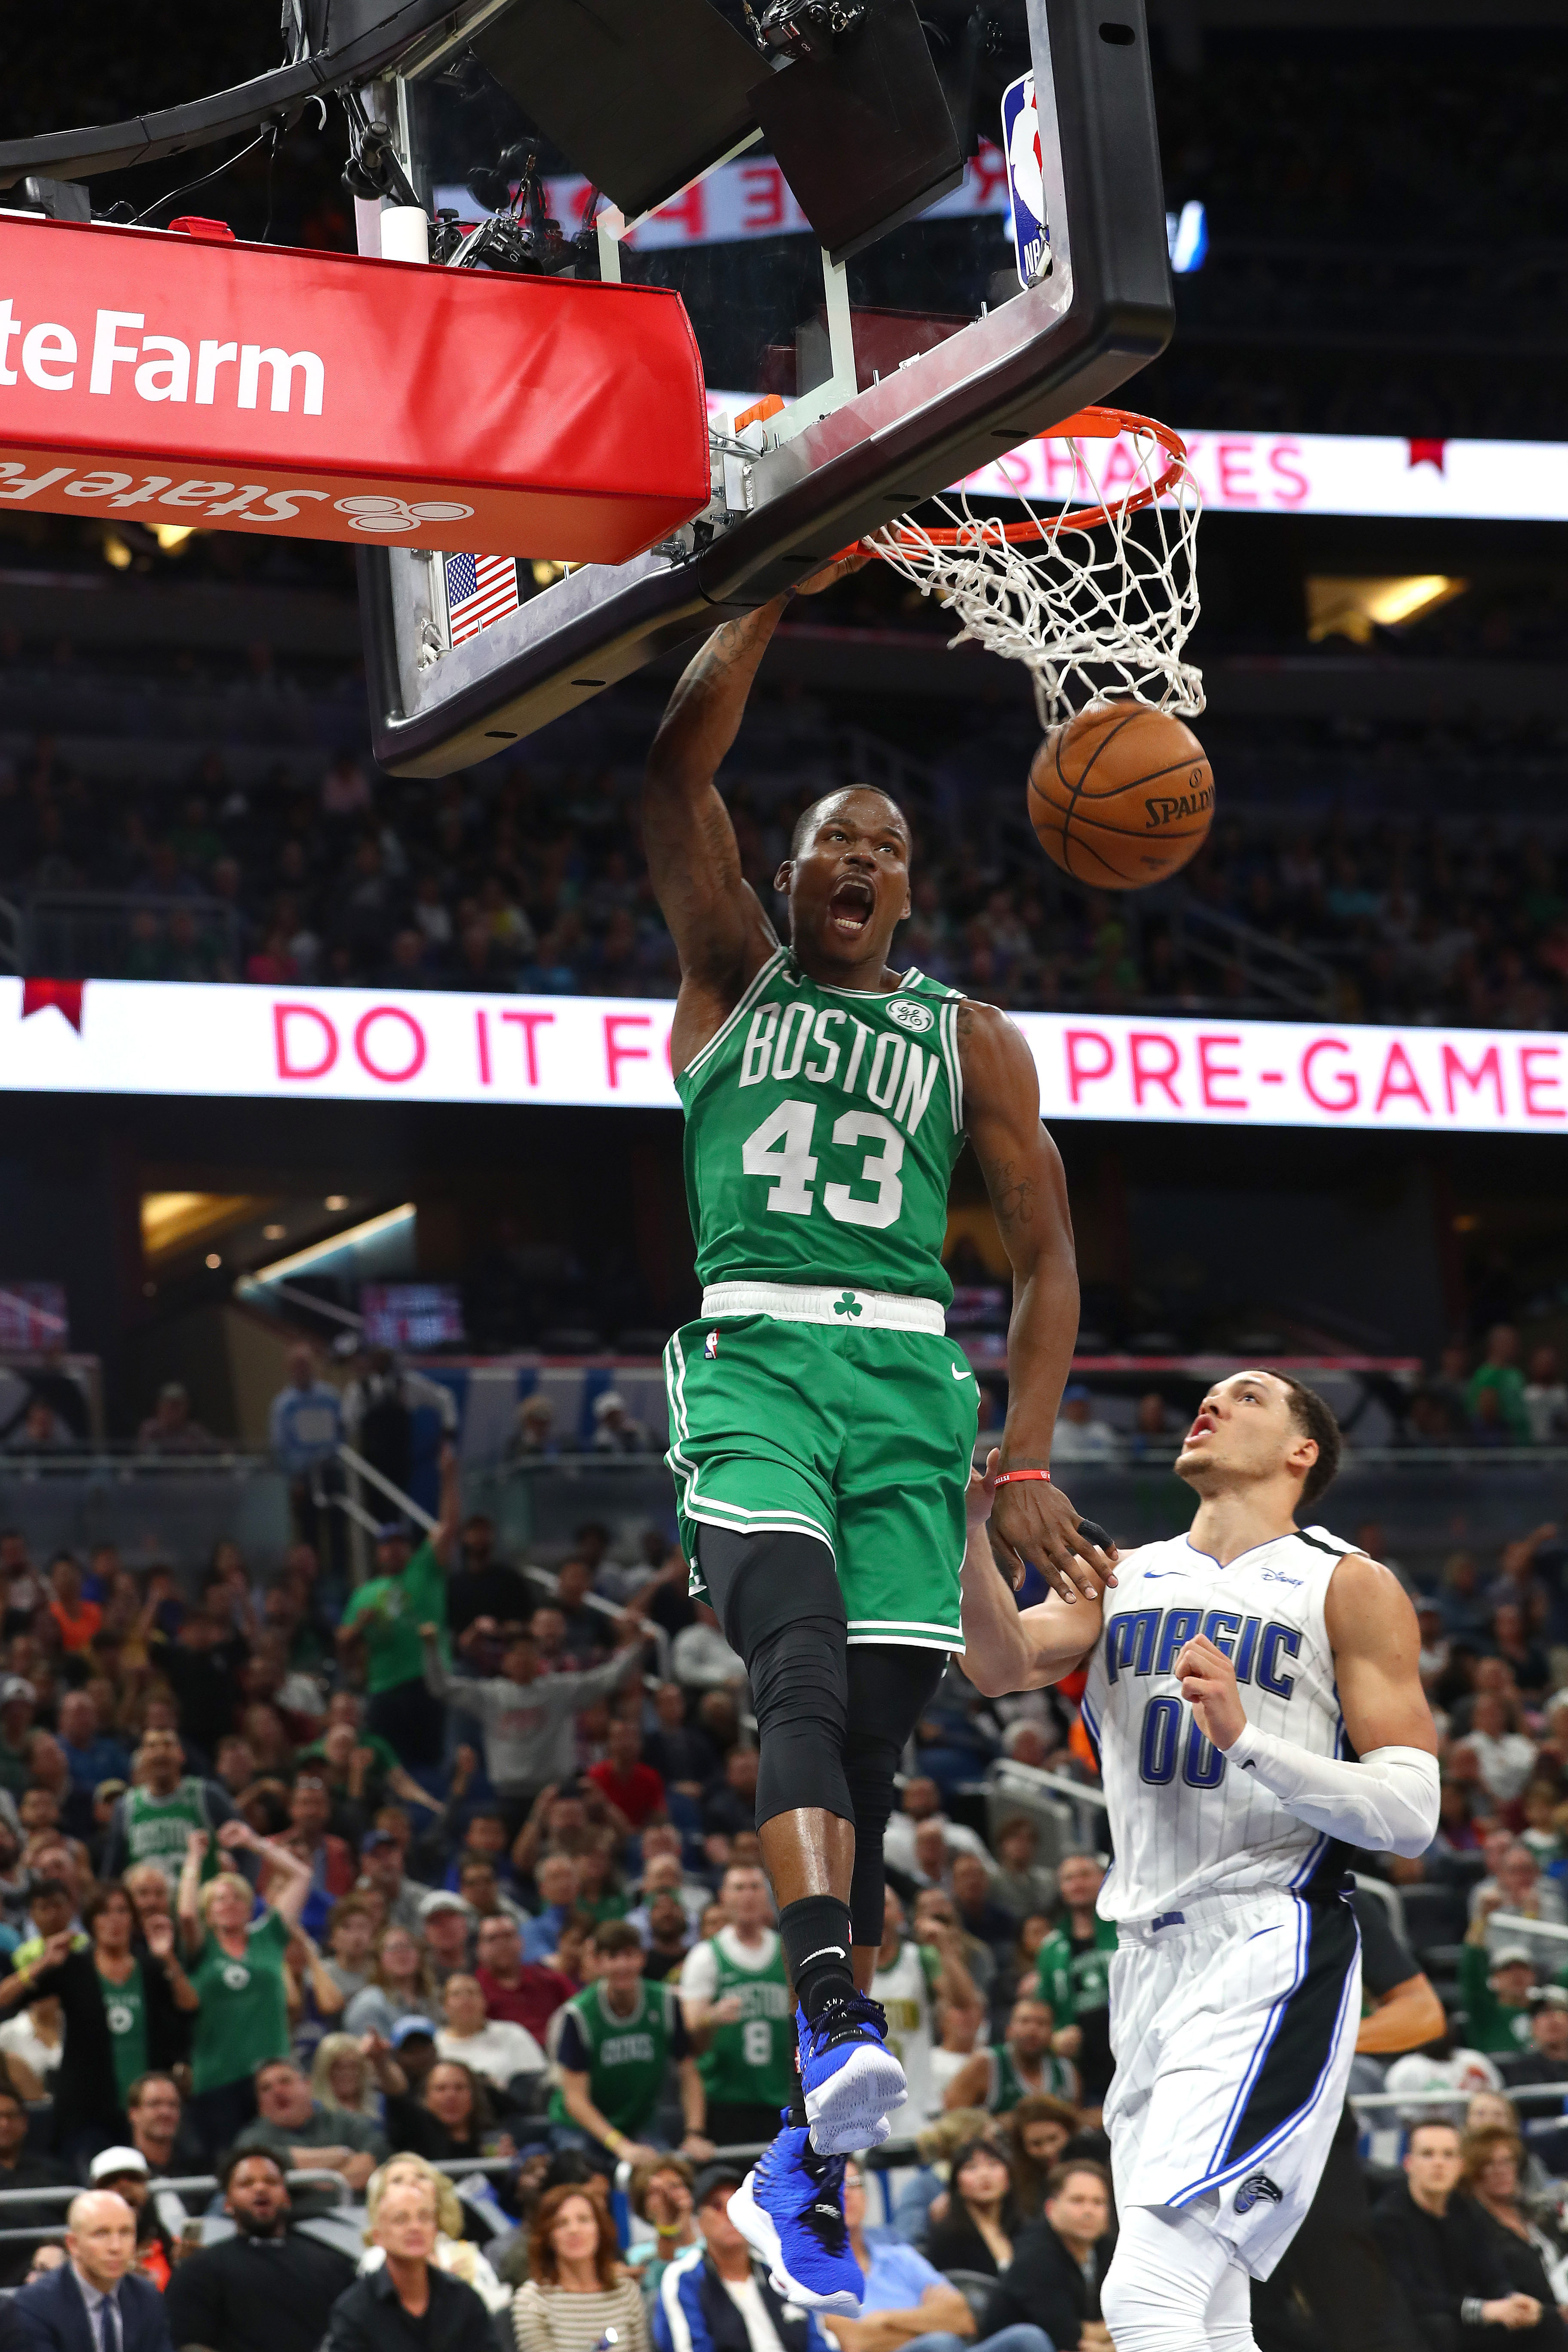 Your Morning Dump... Where the shorthanded Celtics are looking for contributors